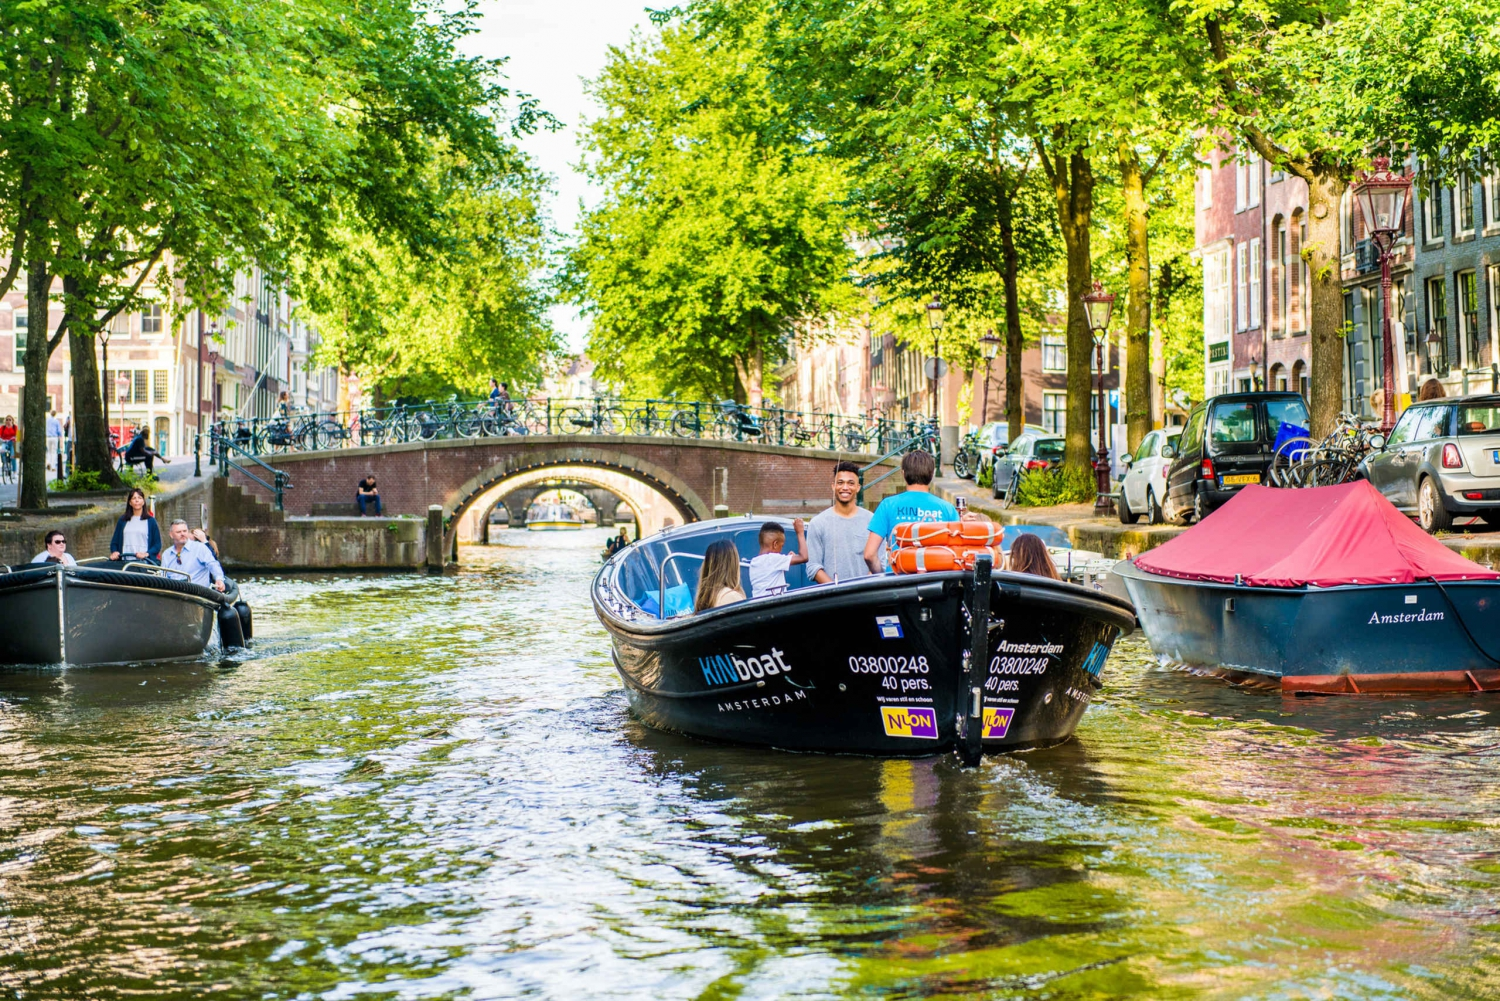 Amsterdam Canal Cruise by Small Open Boat from Rijksmuseum